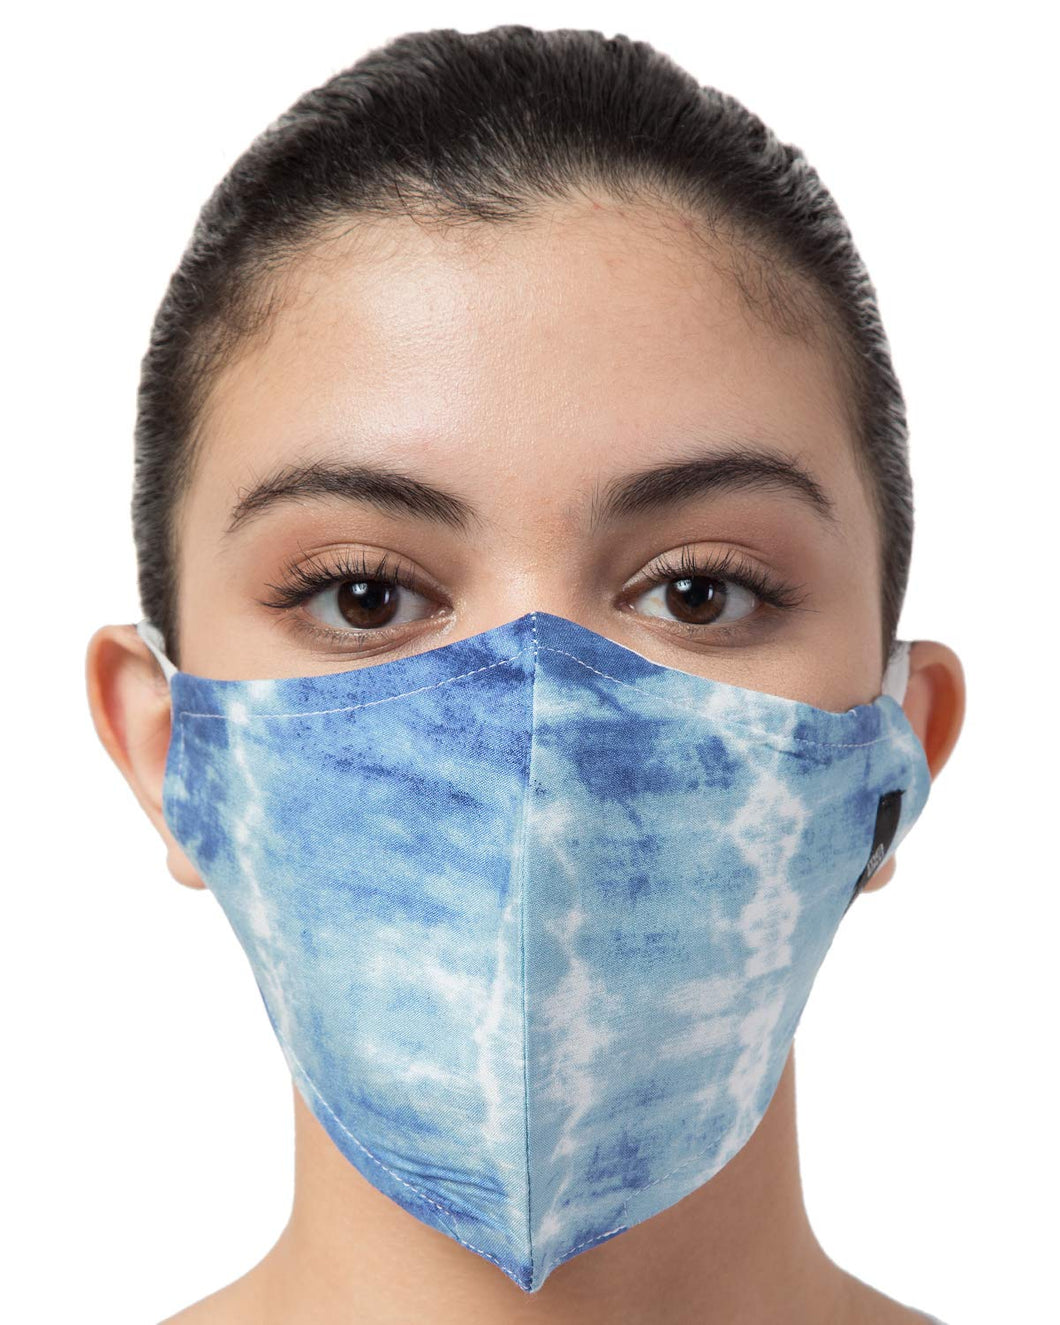 BEYOND WORDS PRE- SANITIZED READY TO WEAR FASHION MASK BLUE TIE DYE